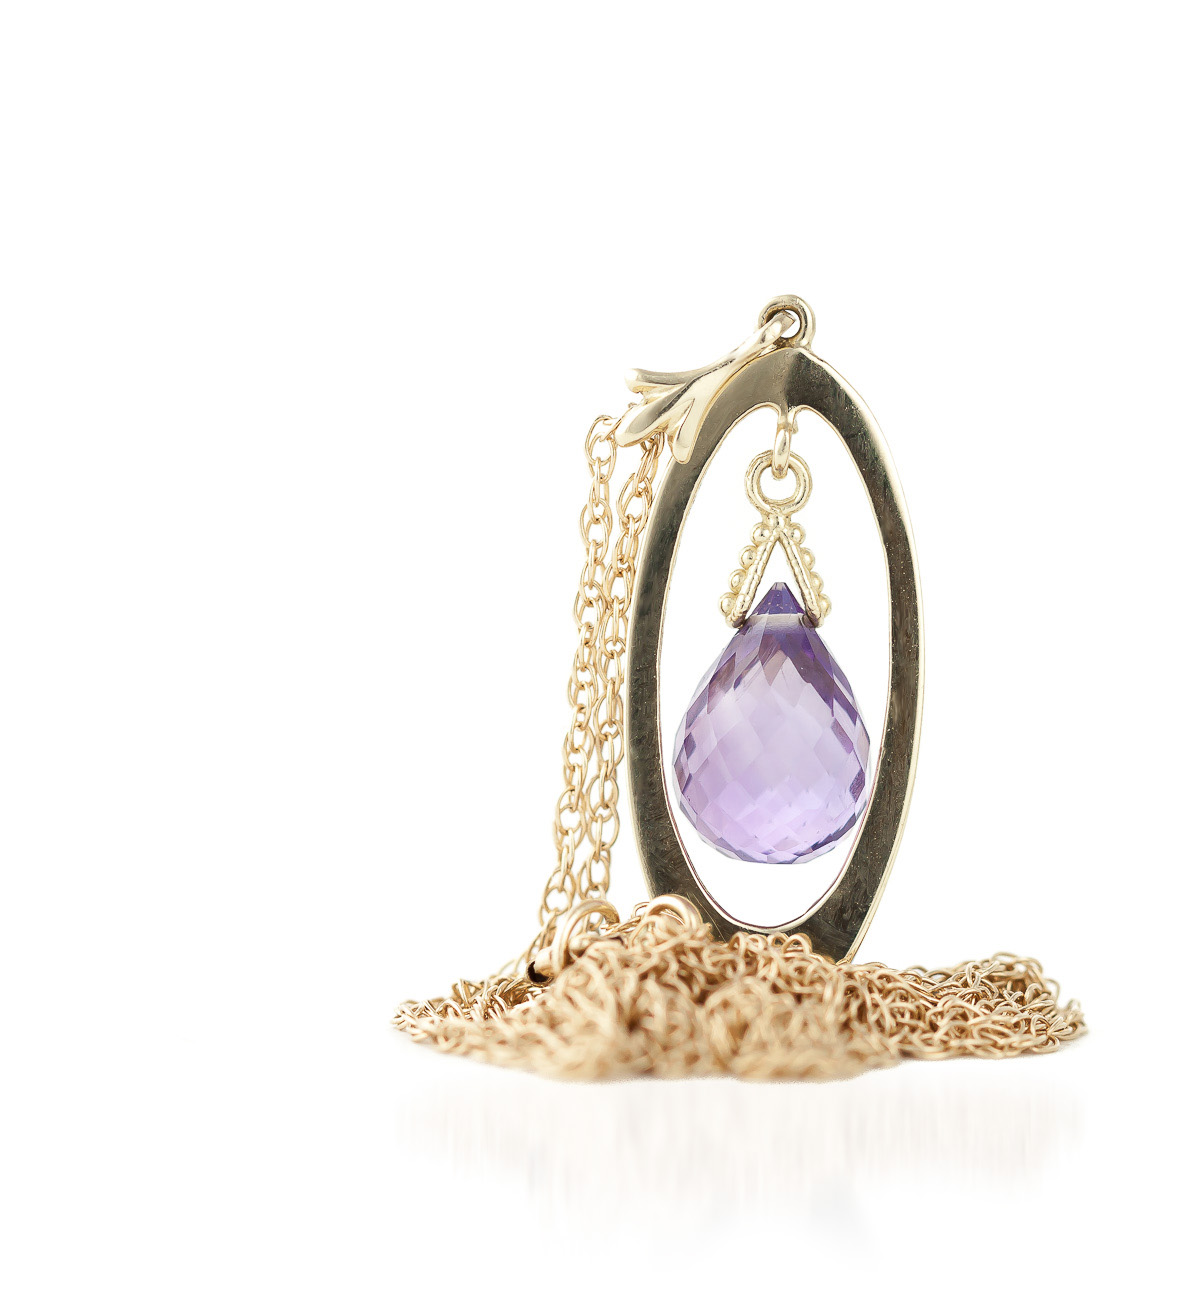 Amethyst Orb Briolette Pendant Necklace 0.7ct in 9ct Gold